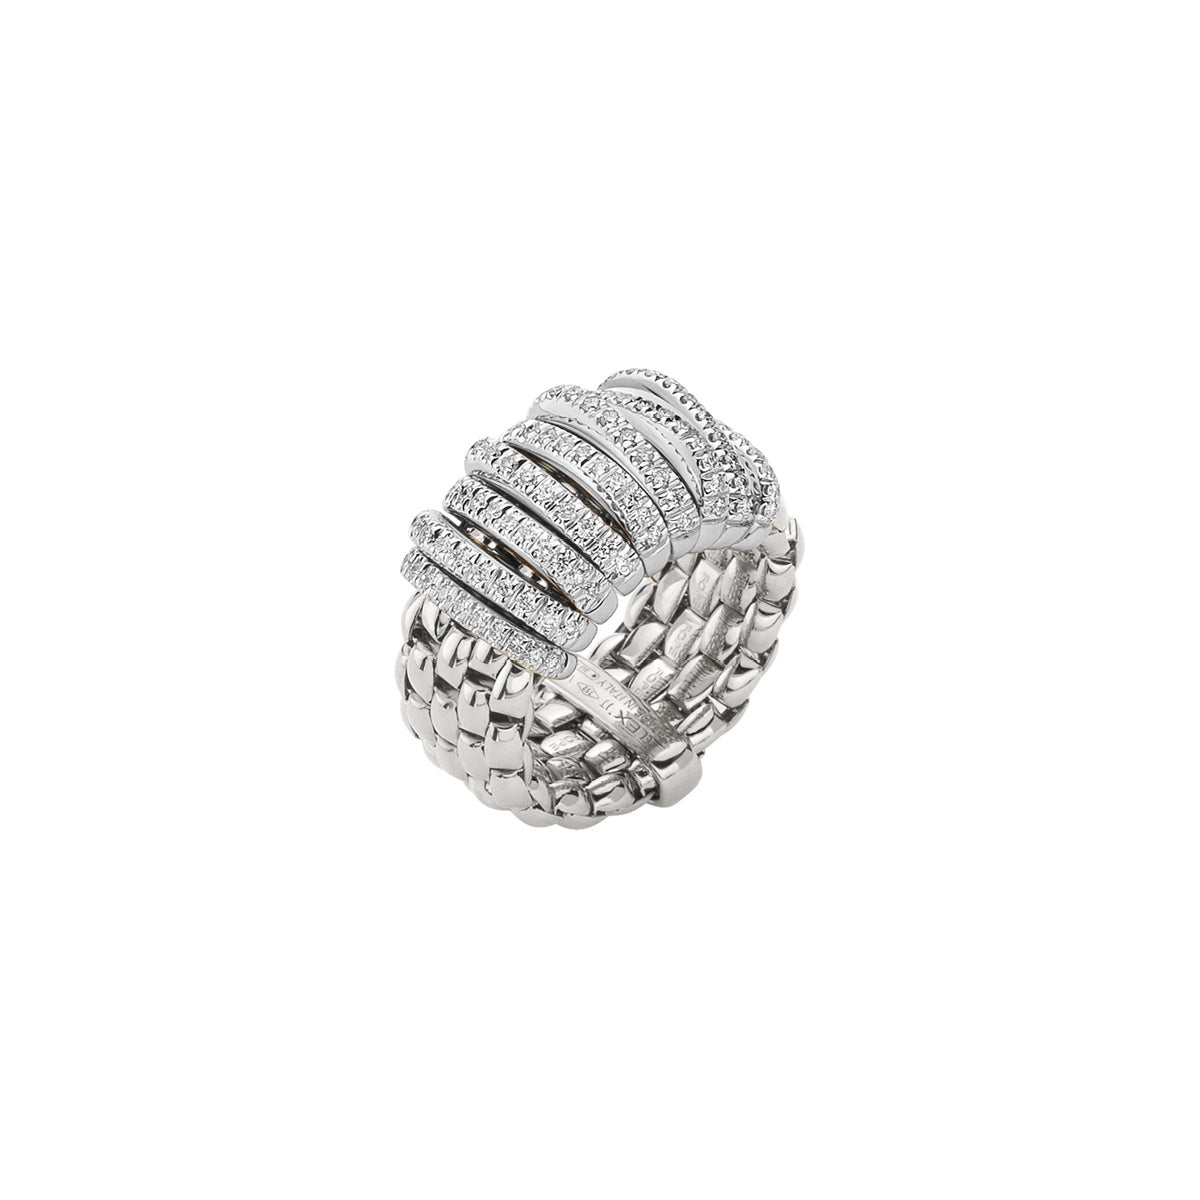 FOPE Panorama Flex'it Ring in 18ct White Gold